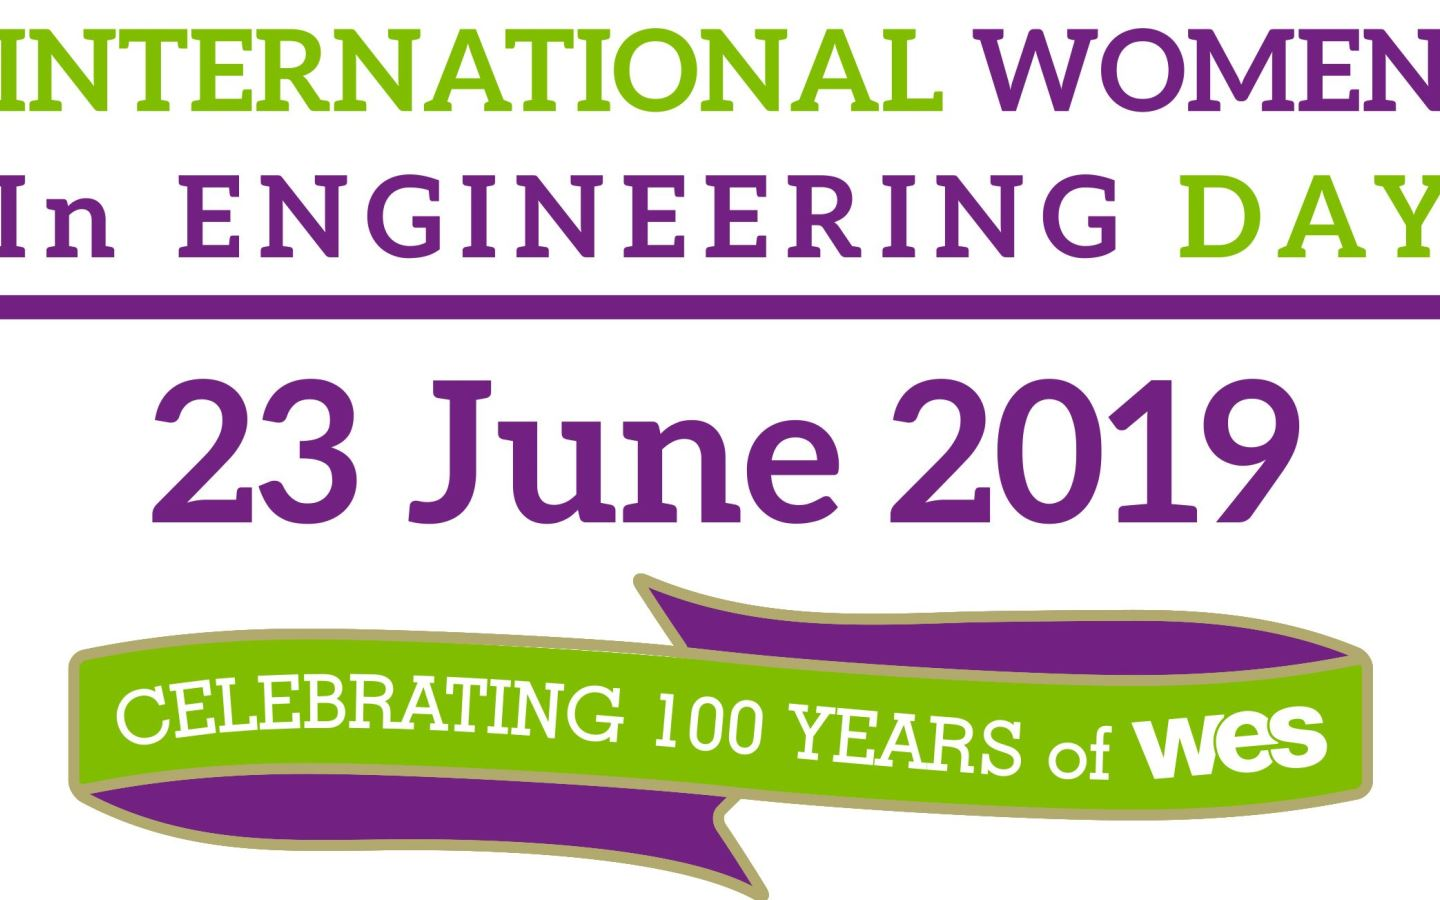 International Women in Engineering Day 2019